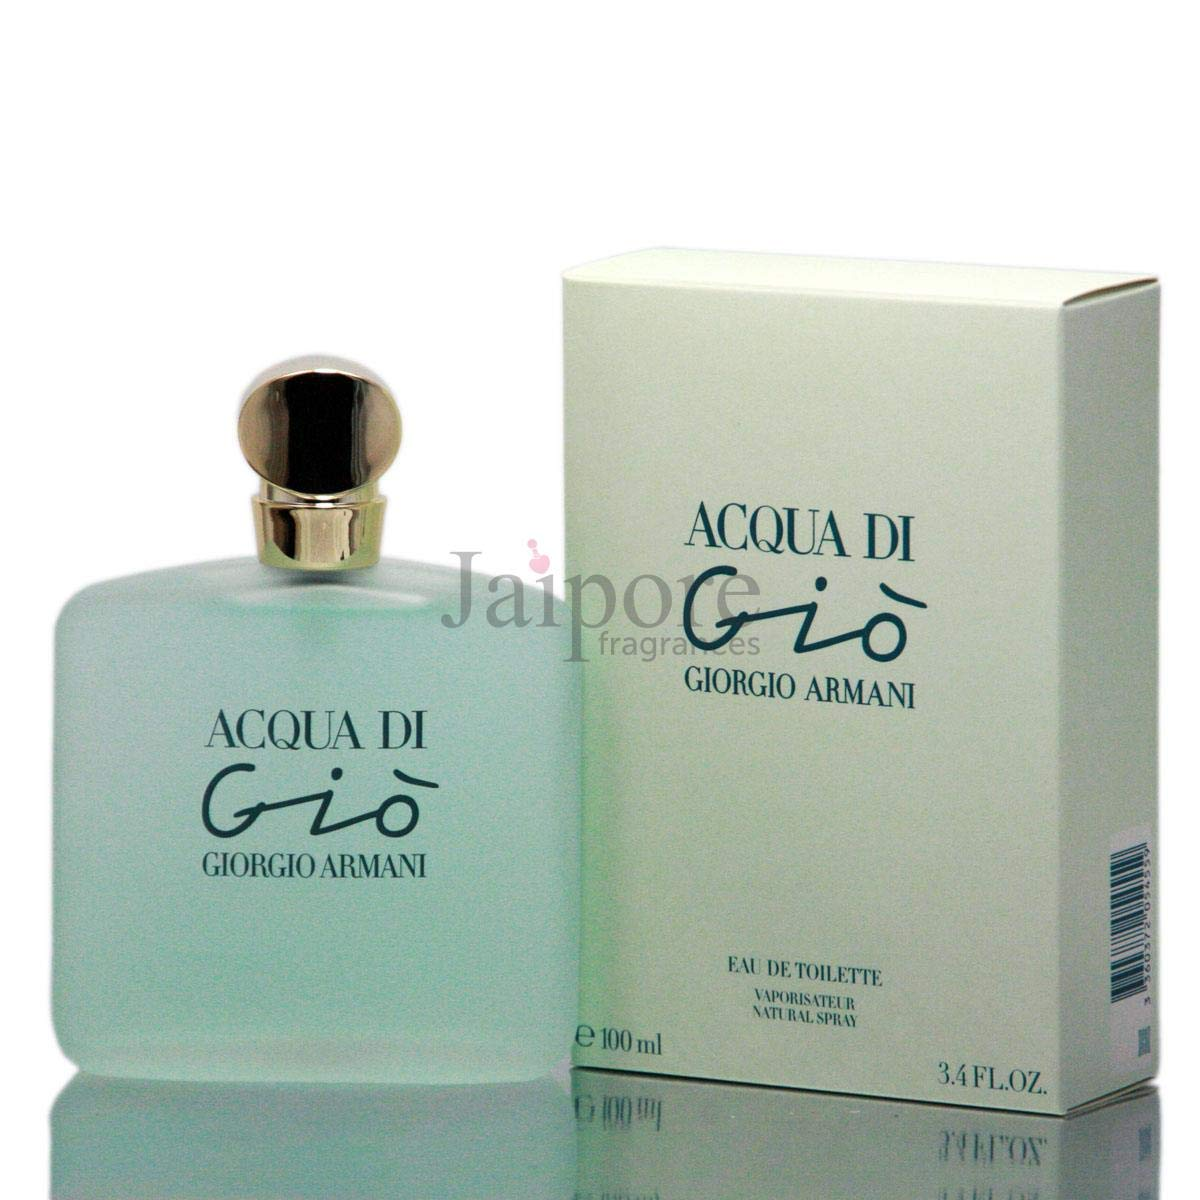 Acqua di Gio by Giorgio Armani for women Eau De Toilette Spray, 3.4 Ounces